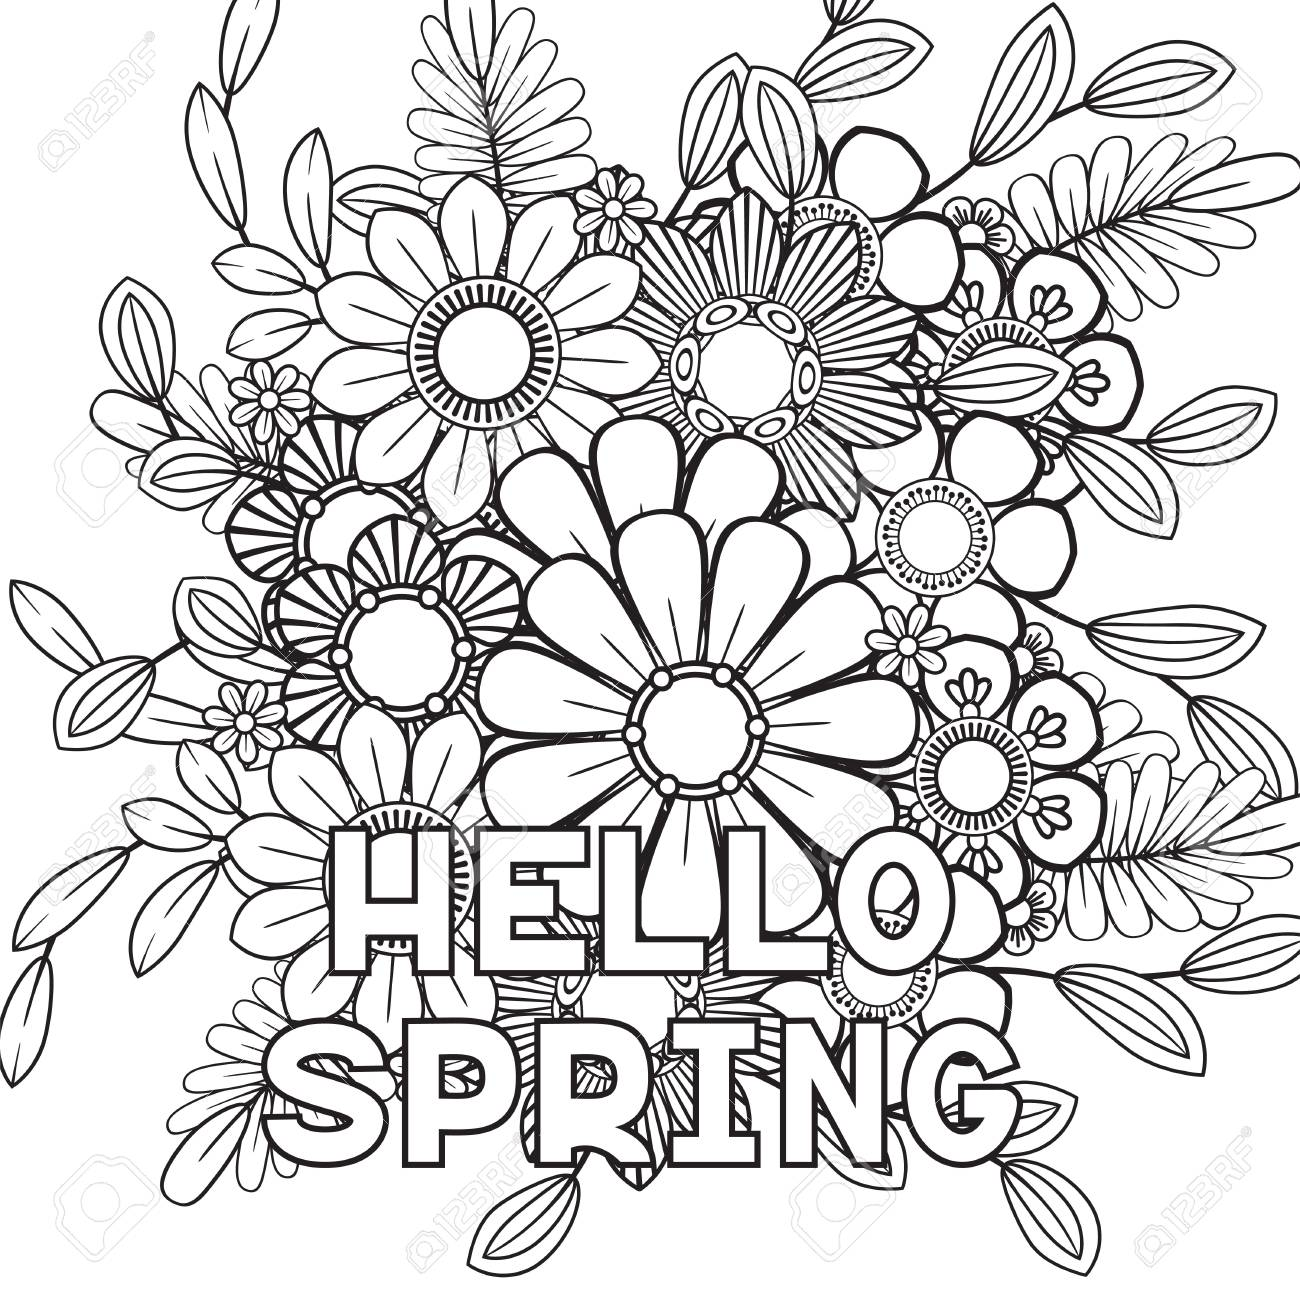 Hello spring coloring page with beautiful flowers. Black and..